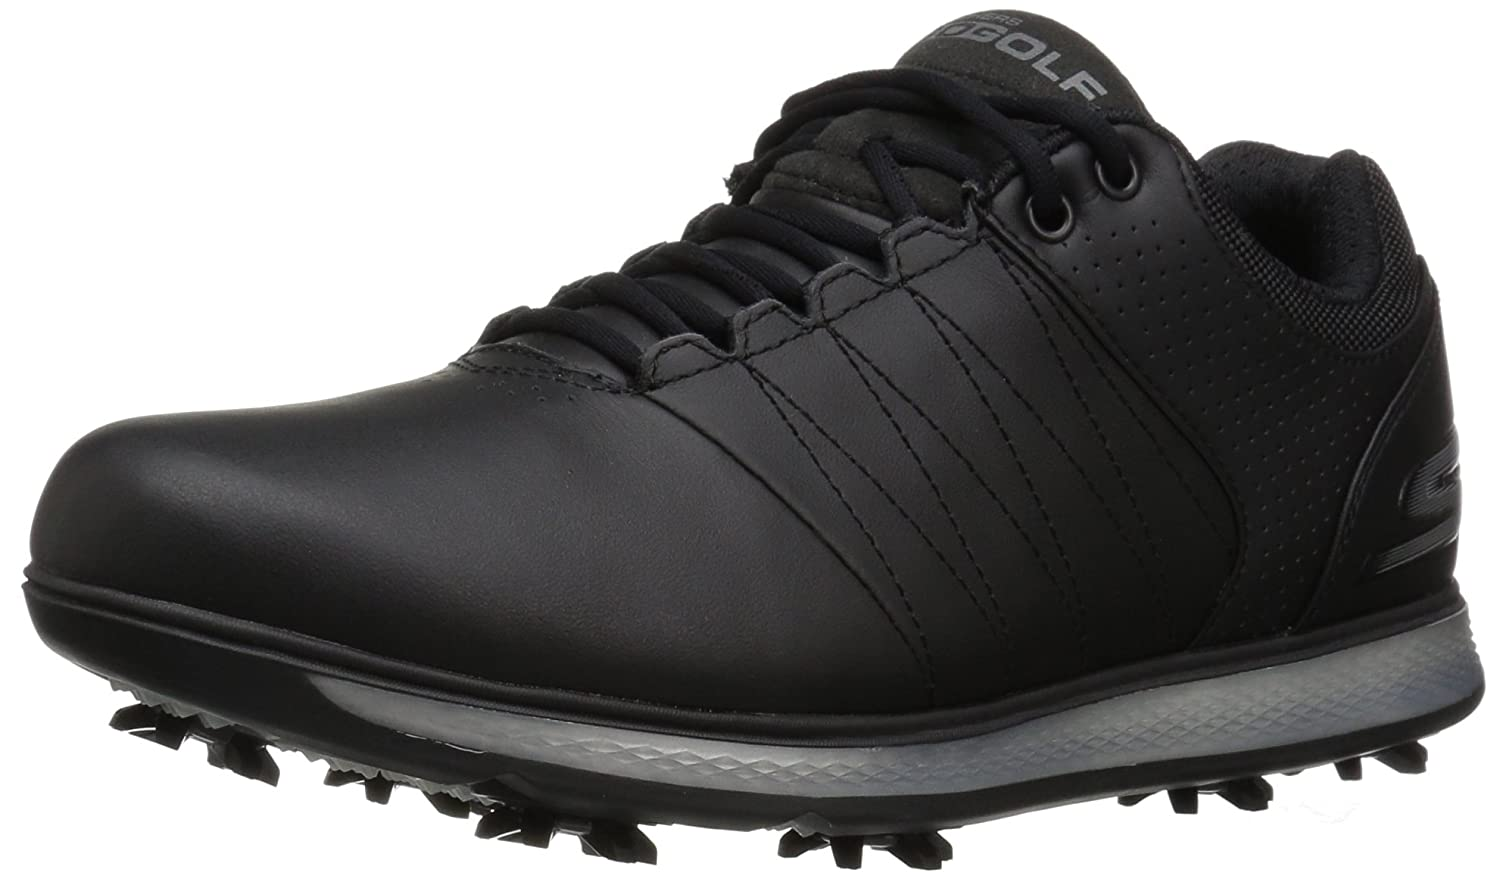 Skechers Performance Men\'s Go Golf Pro 2 Golf Shoe Black/Silver